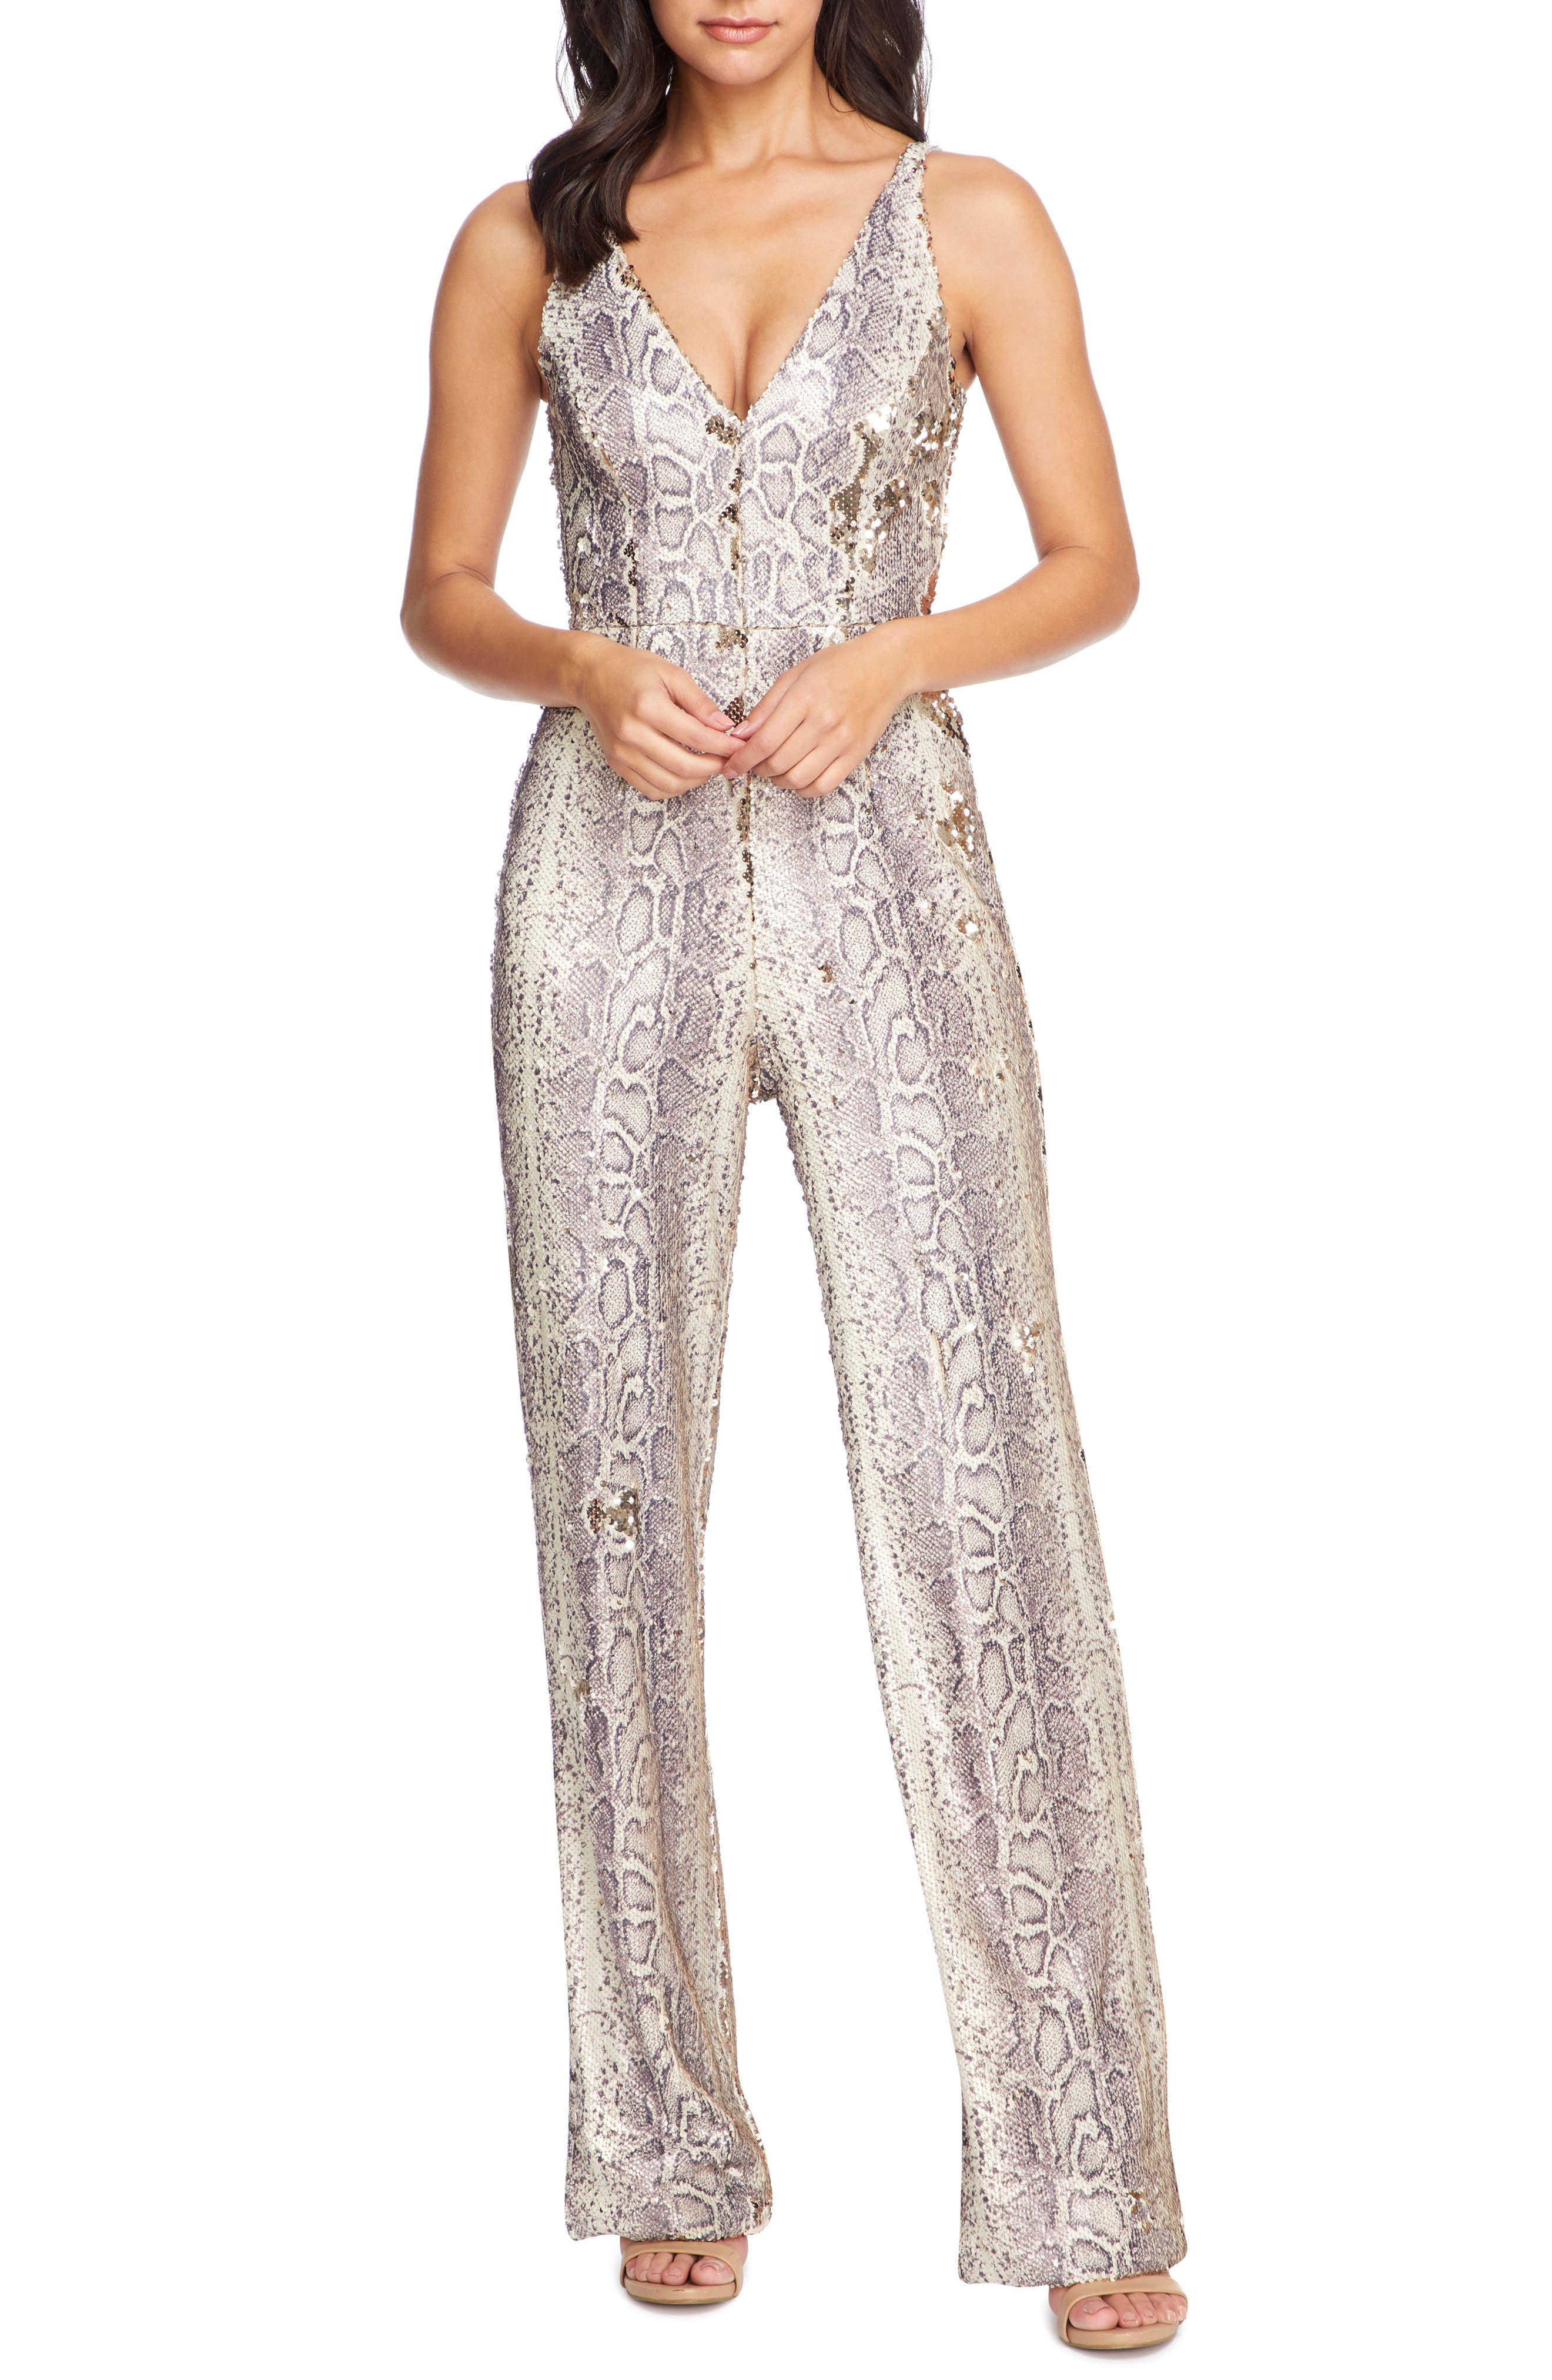 70s Jumpsuit | Disco Jumpsuits – Sequin, Striped, Gold, White, Black Womens Dress The Population Charlie Python Print Sequin Jumpsuit $238.50 AT vintagedancer.com